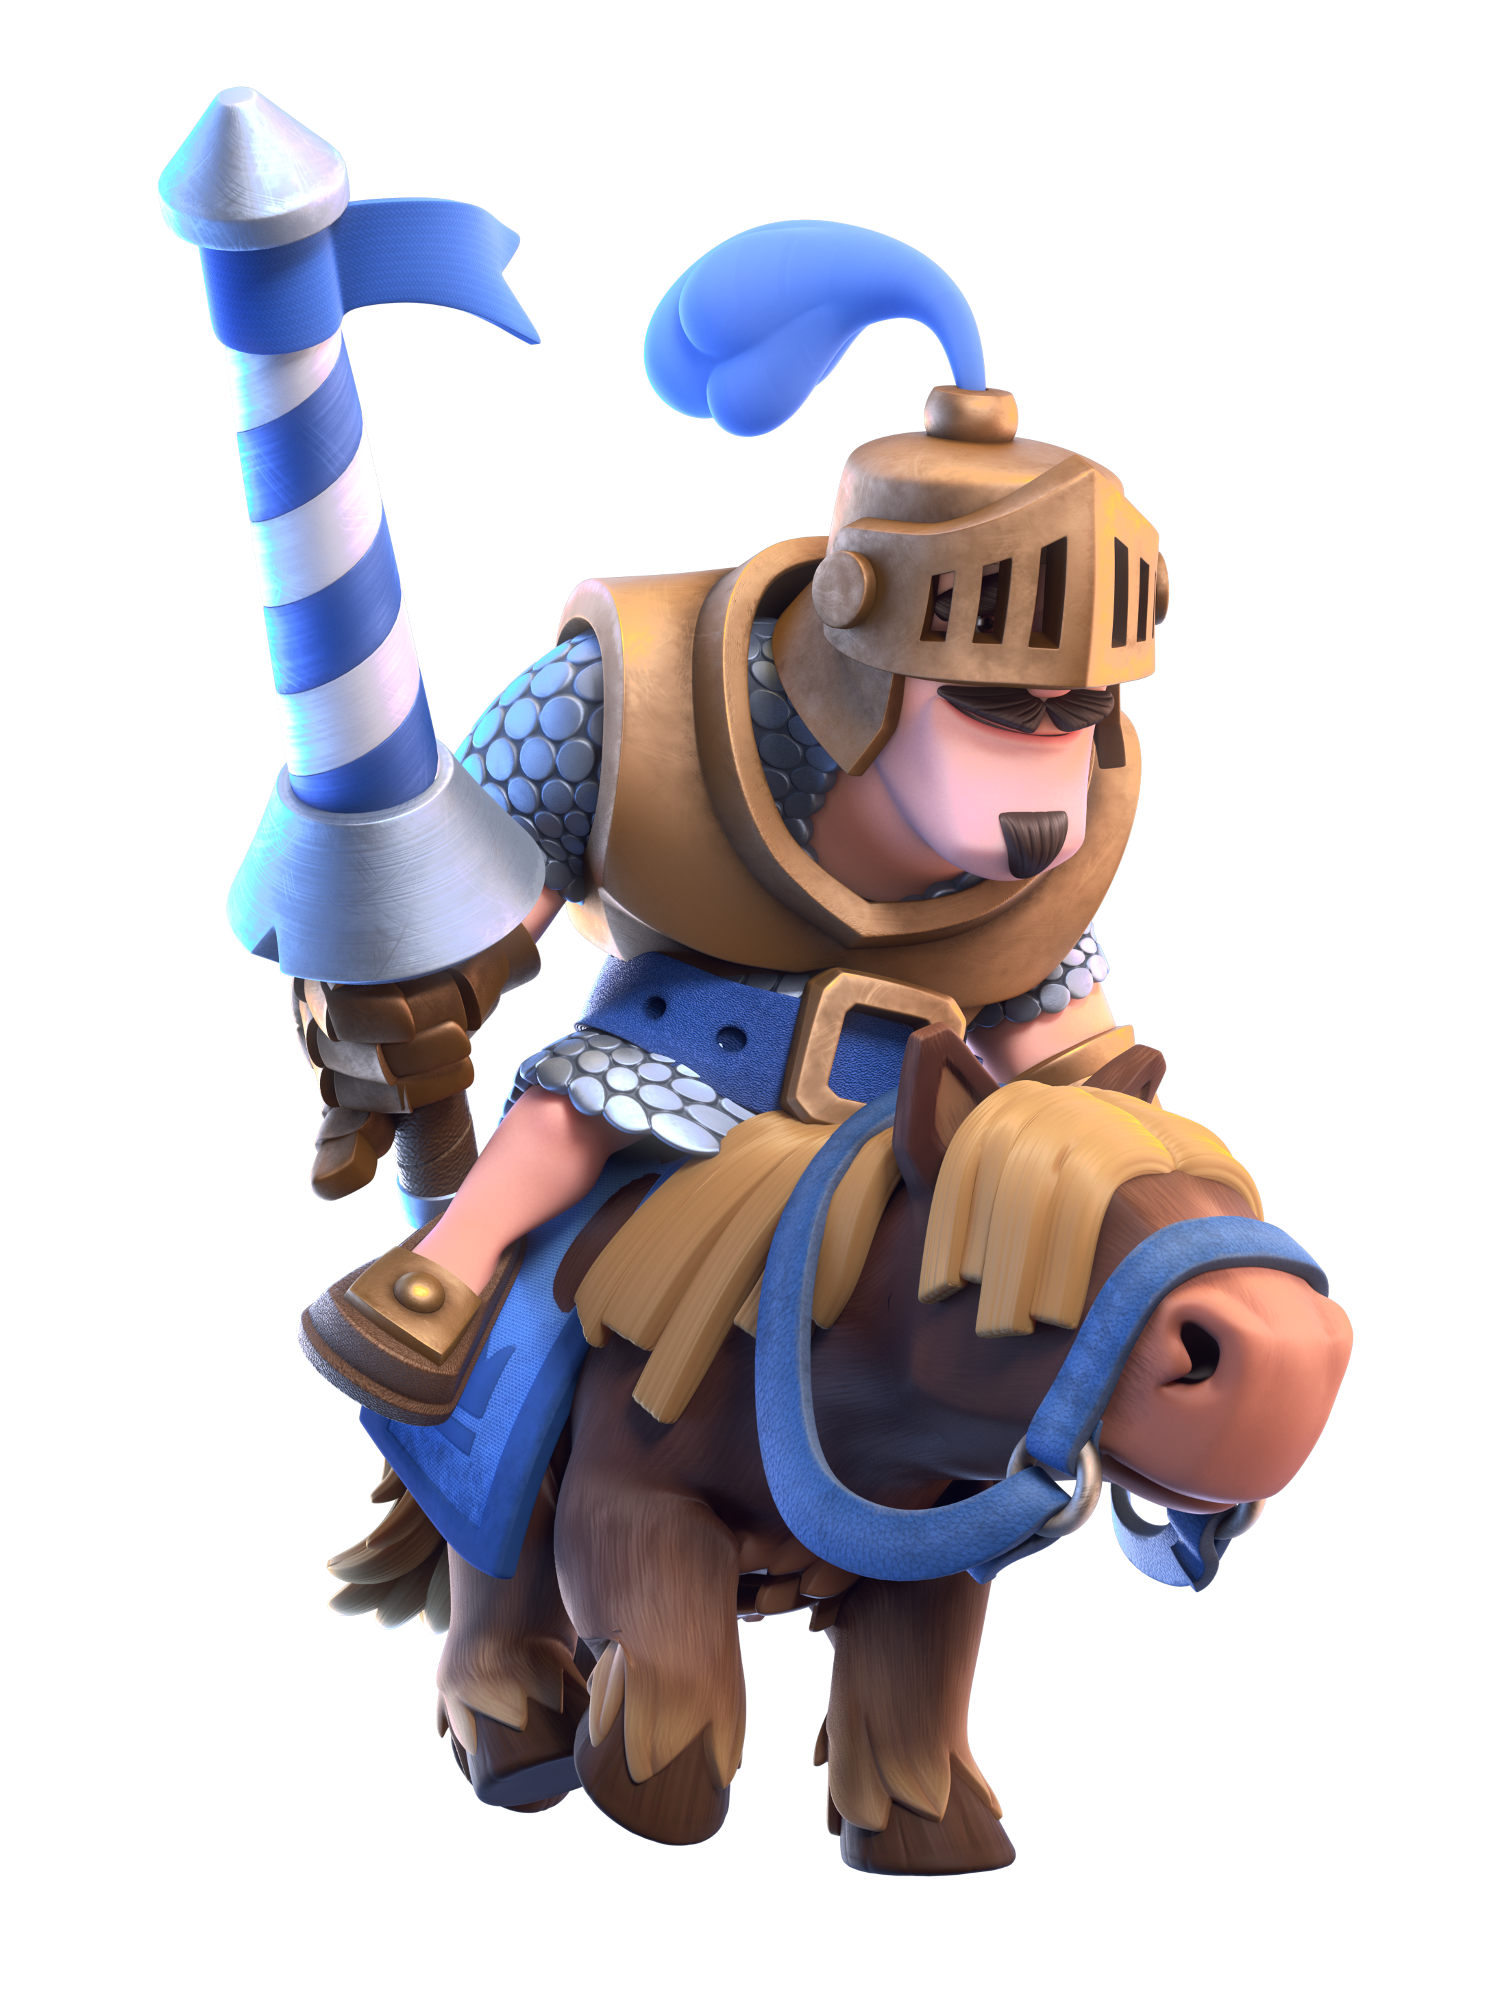 Princess clash royale png. Image blue prince charge